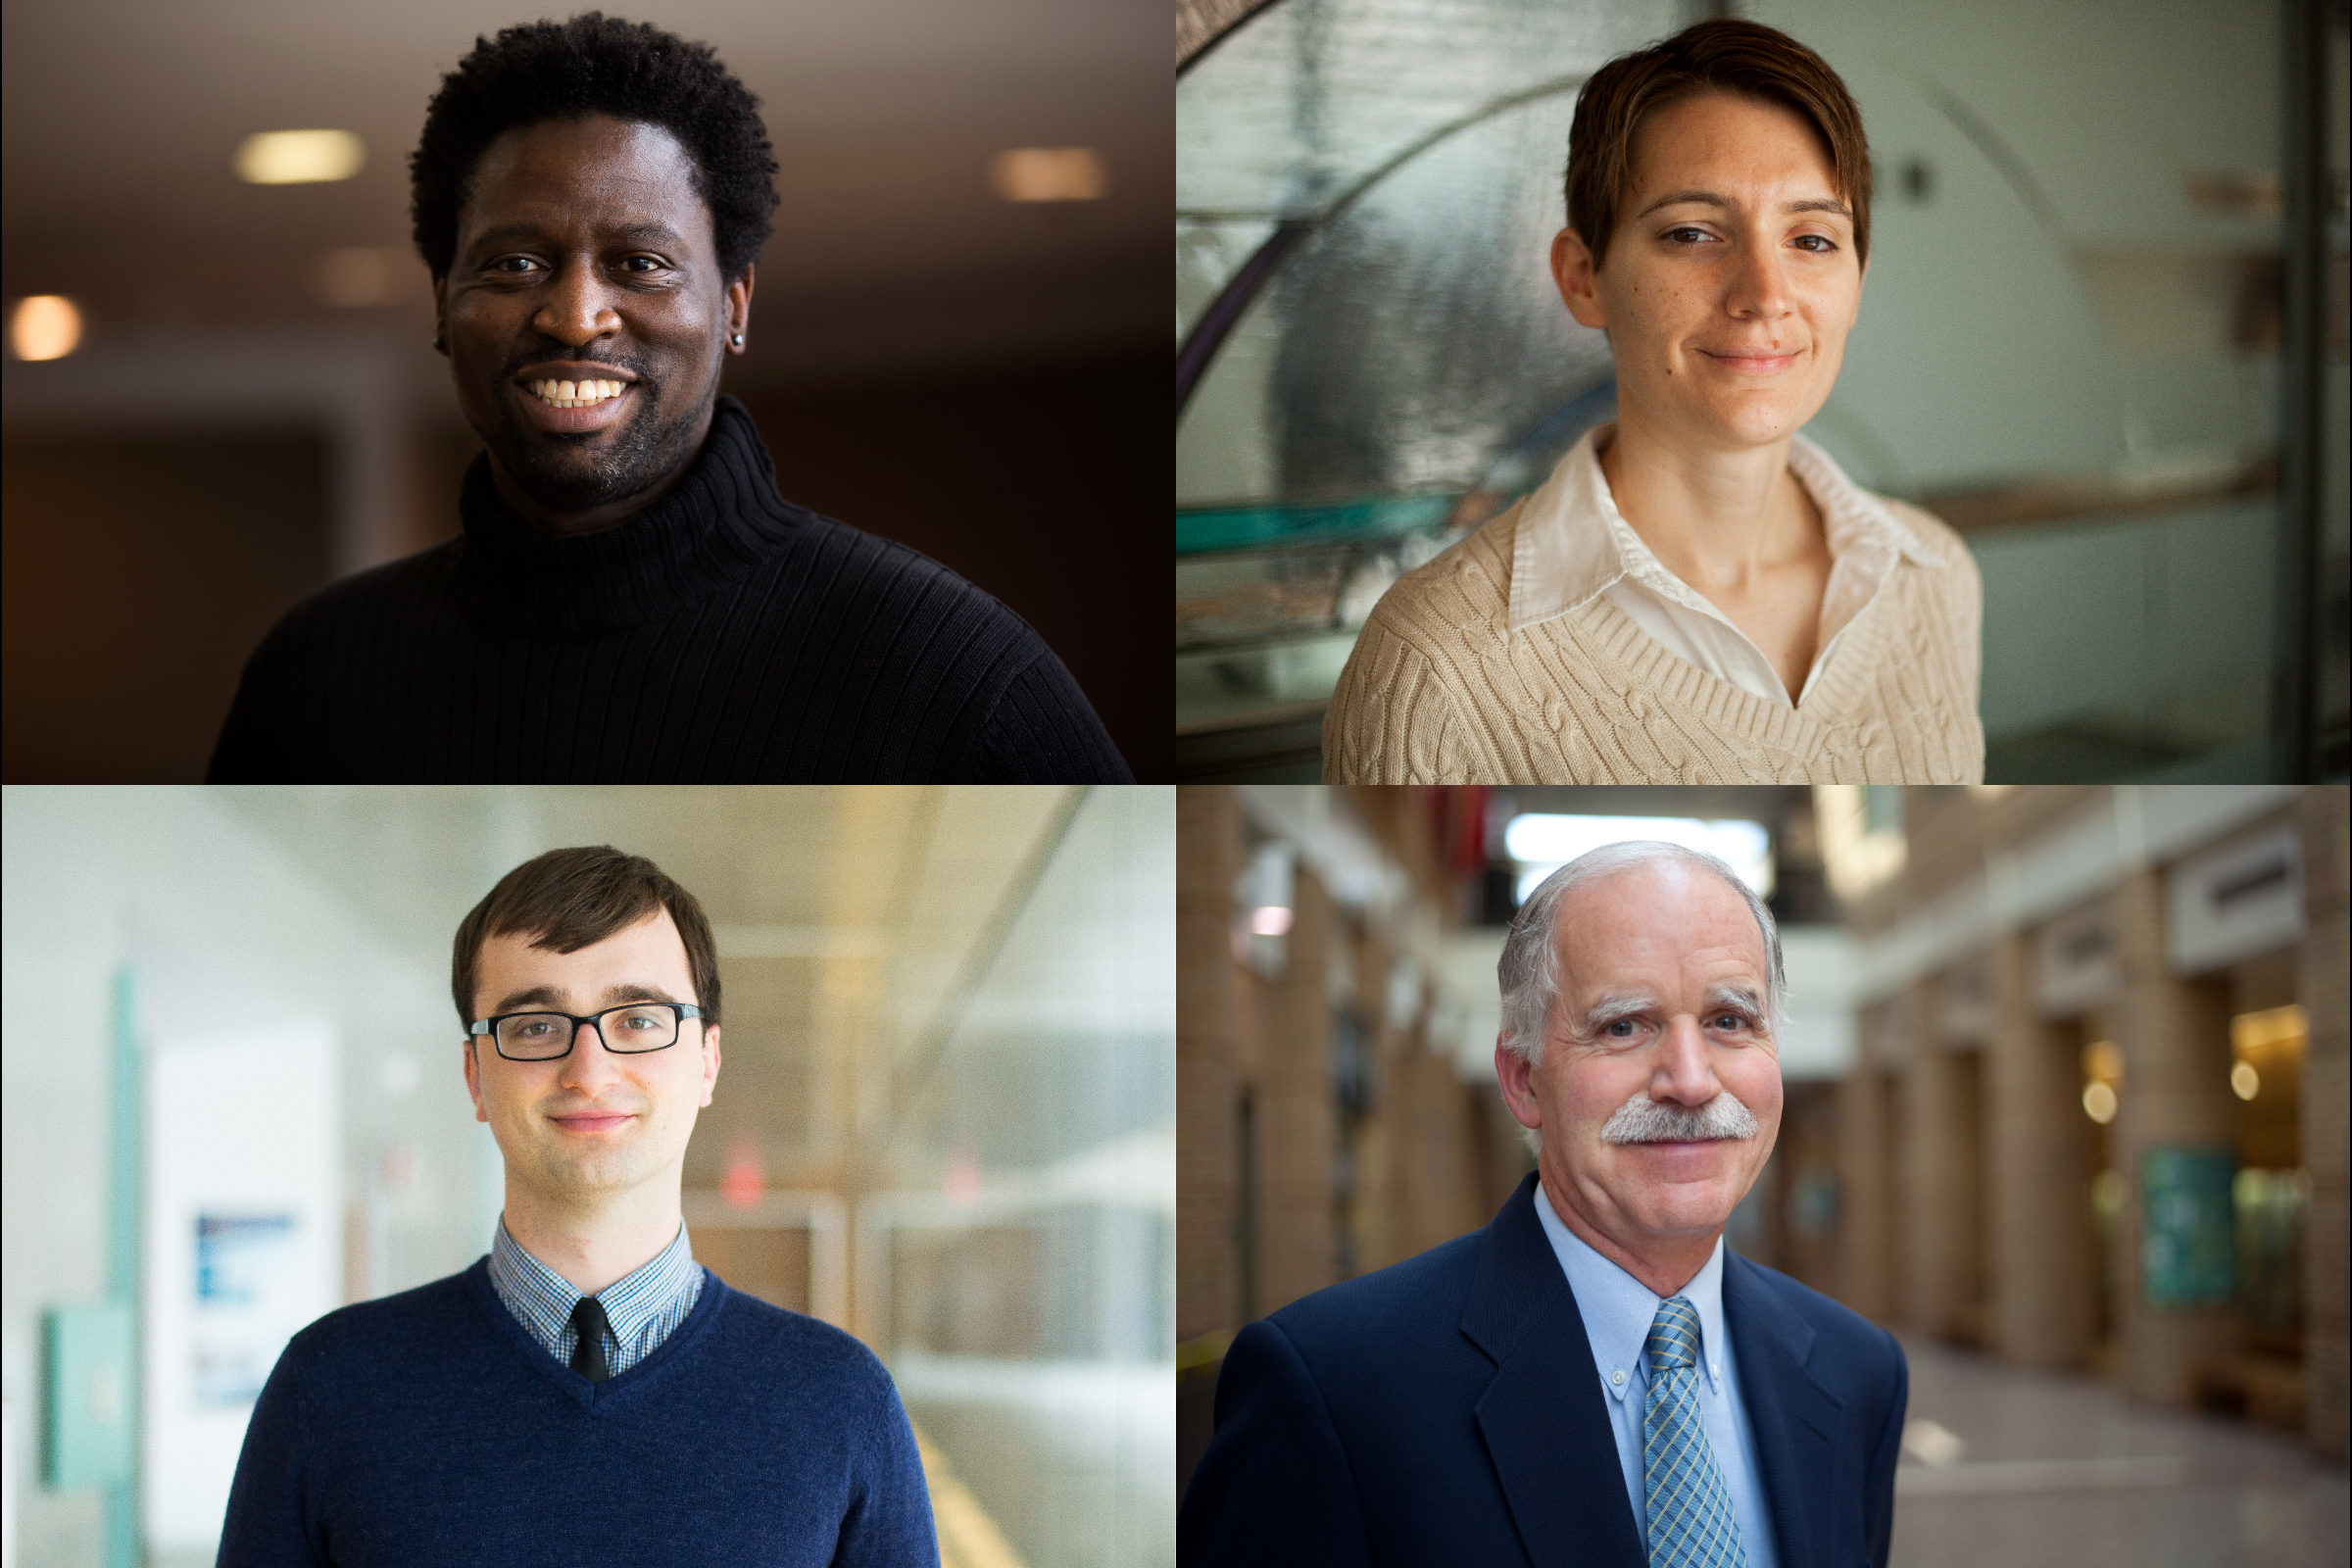 Four CEE faculty receive awards from the College of Engineering